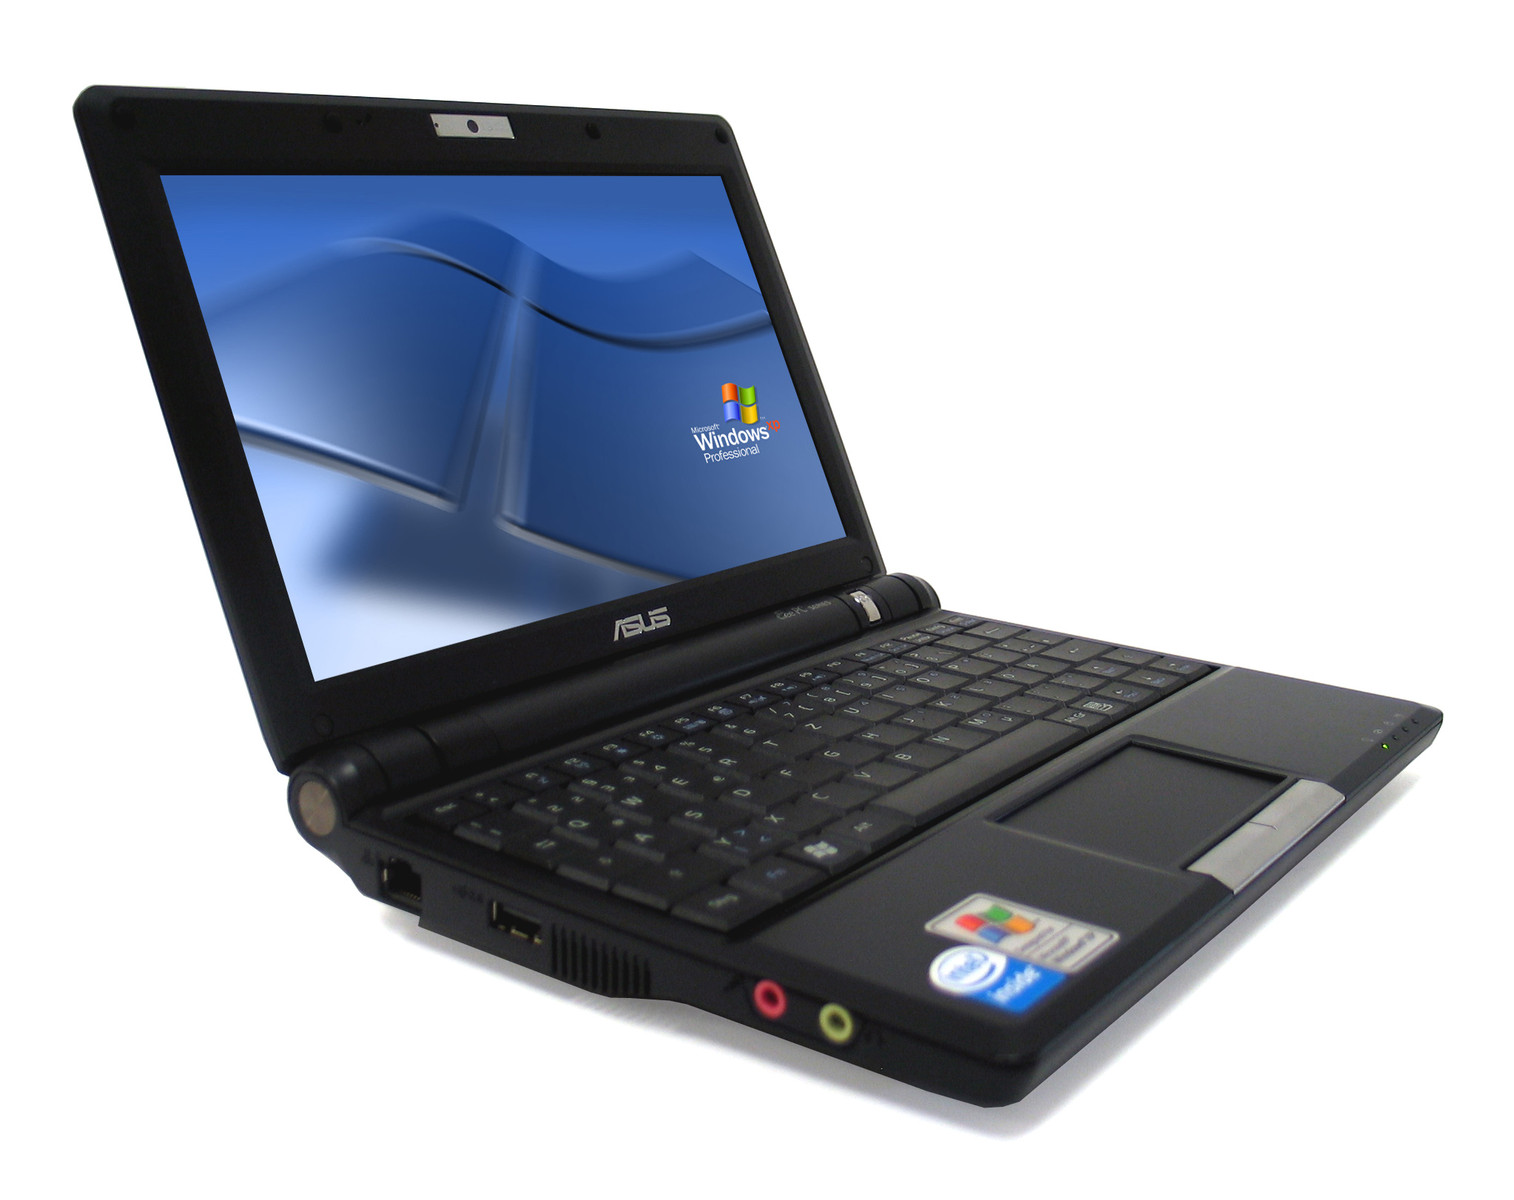 Asus Eee Pc 900 Notebookcheck Net External Reviews